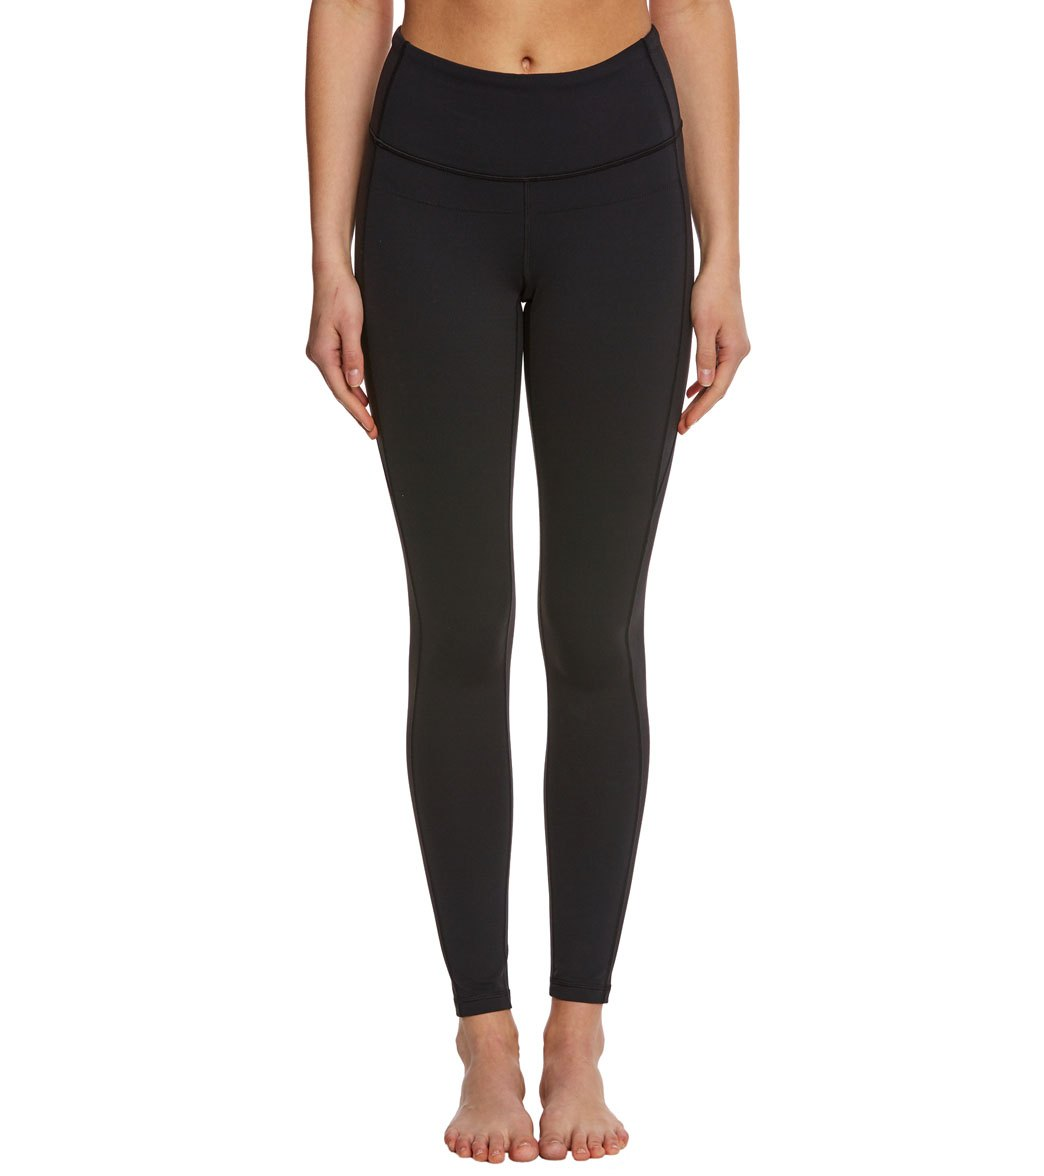 03acf13154b006 Lucy Women's Perfect Core Legging at SwimOutlet.com - Free Shipping